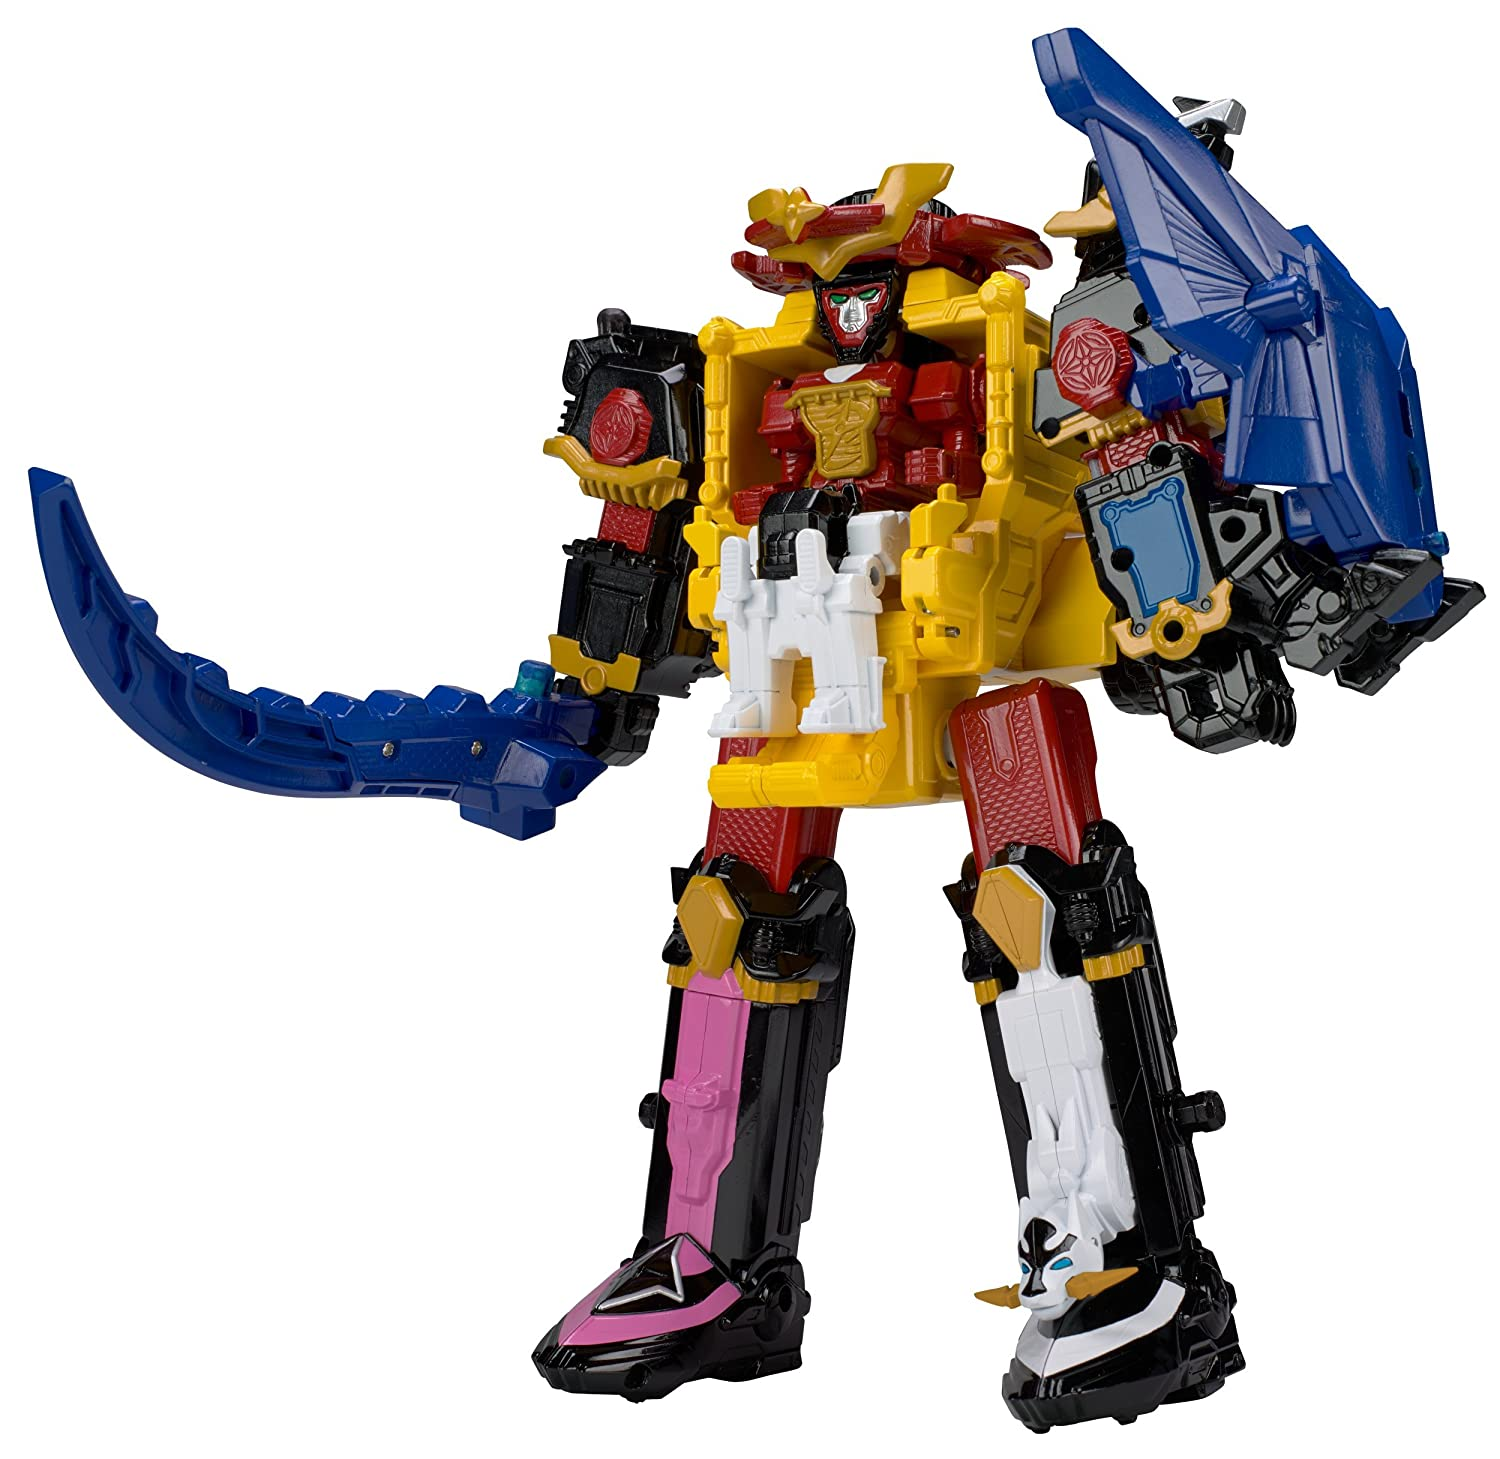 Power Rangers Ninja Steel Dx Ninja Steel Megazord Action Figure